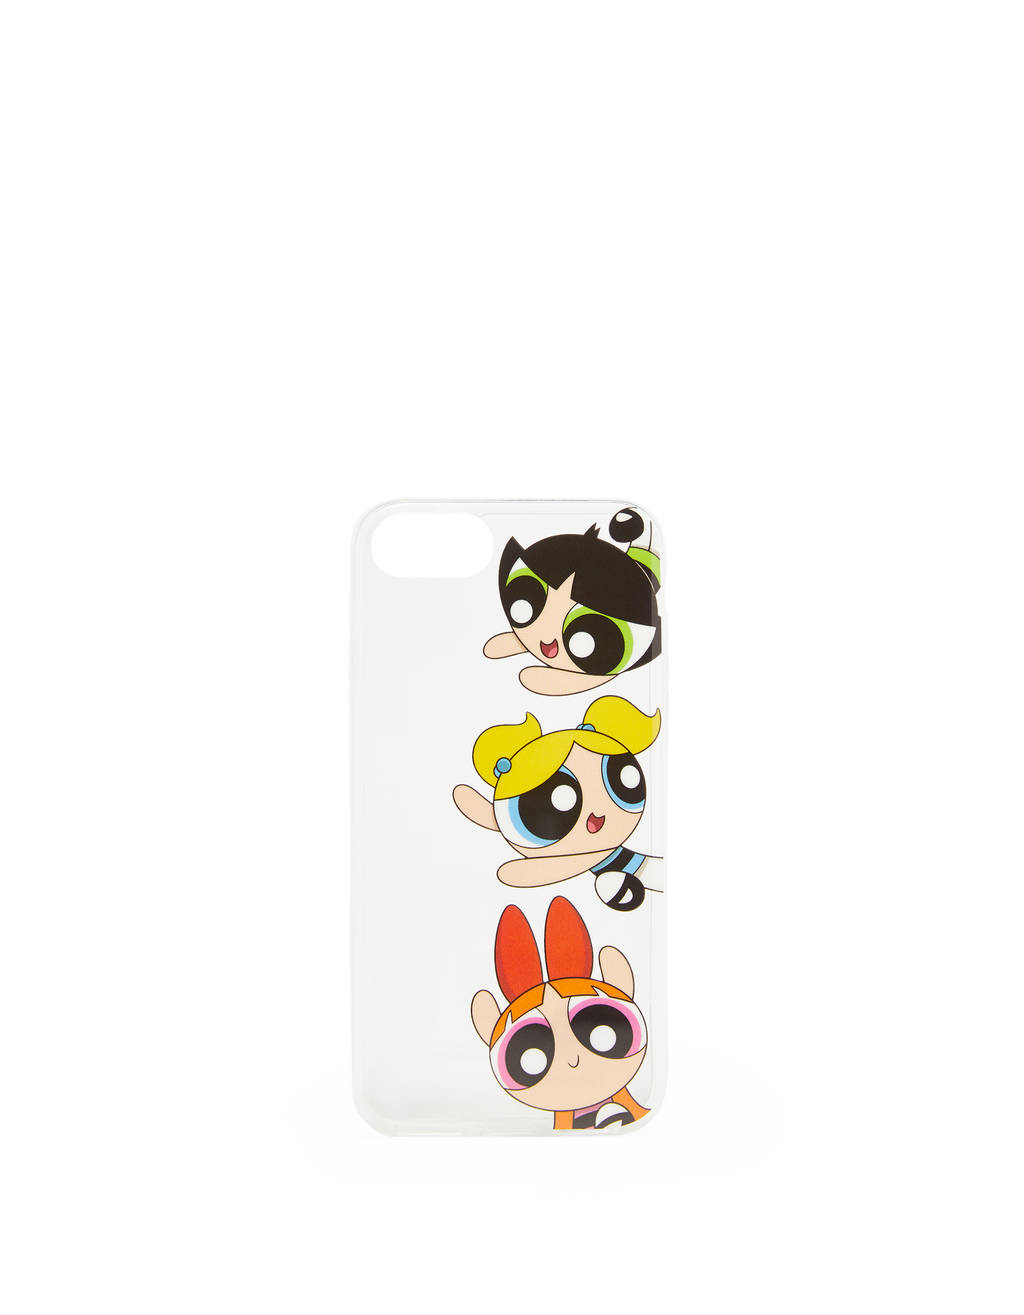 Powerpuff Girls iPhone 6 / 7 / 8 case